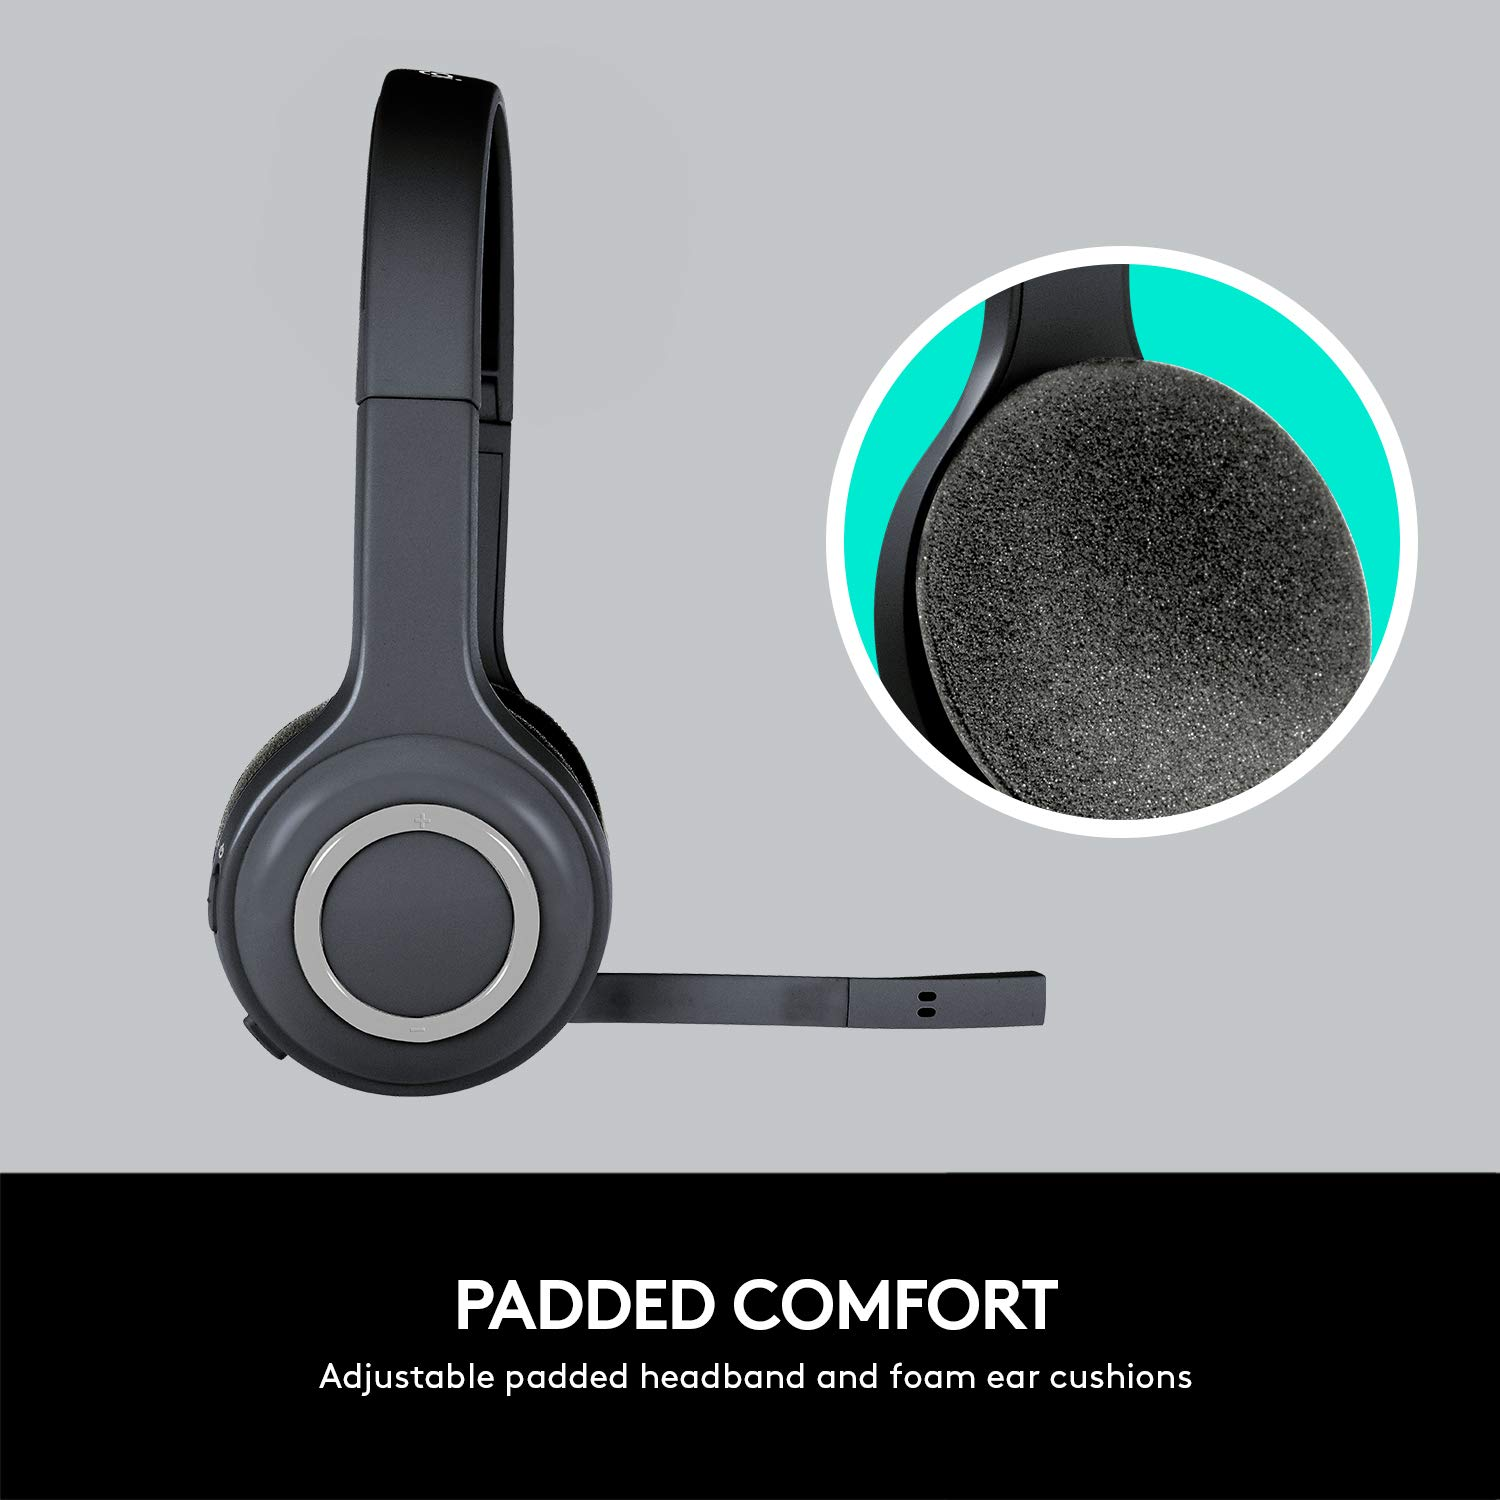 Amazon.in: Buy Logitech H600 Wireless Headset (Black, 981-000341) Online at Low Prices in India | Logitech Reviews & Ratings